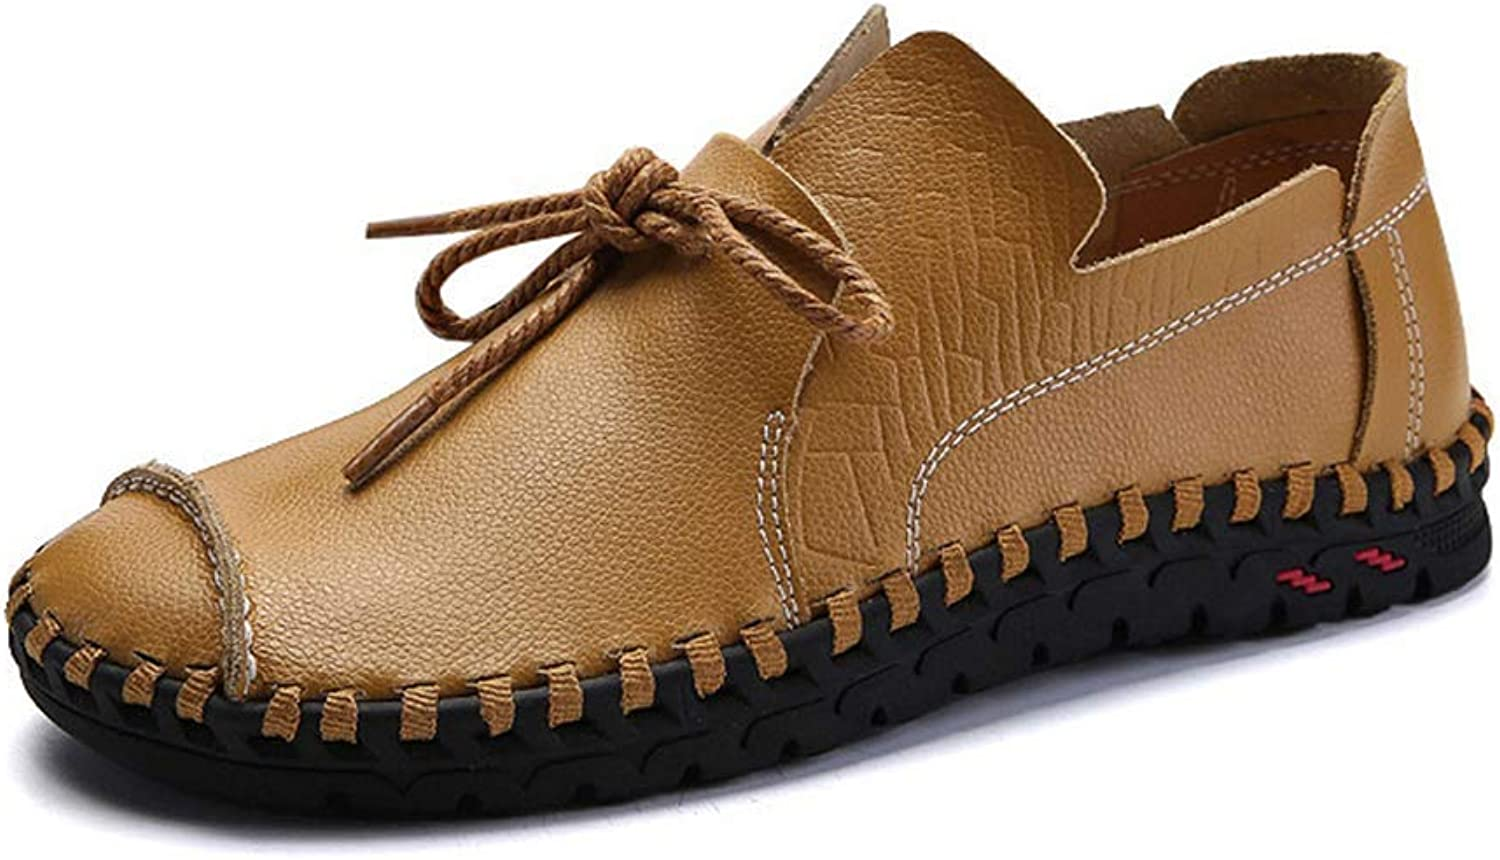 ZHRUI Men Real Leather shoes Driving shoes Handmade Casual shoes Flats Sneakers Male Boat shoes (color   Camel, Size   7=41 EU)